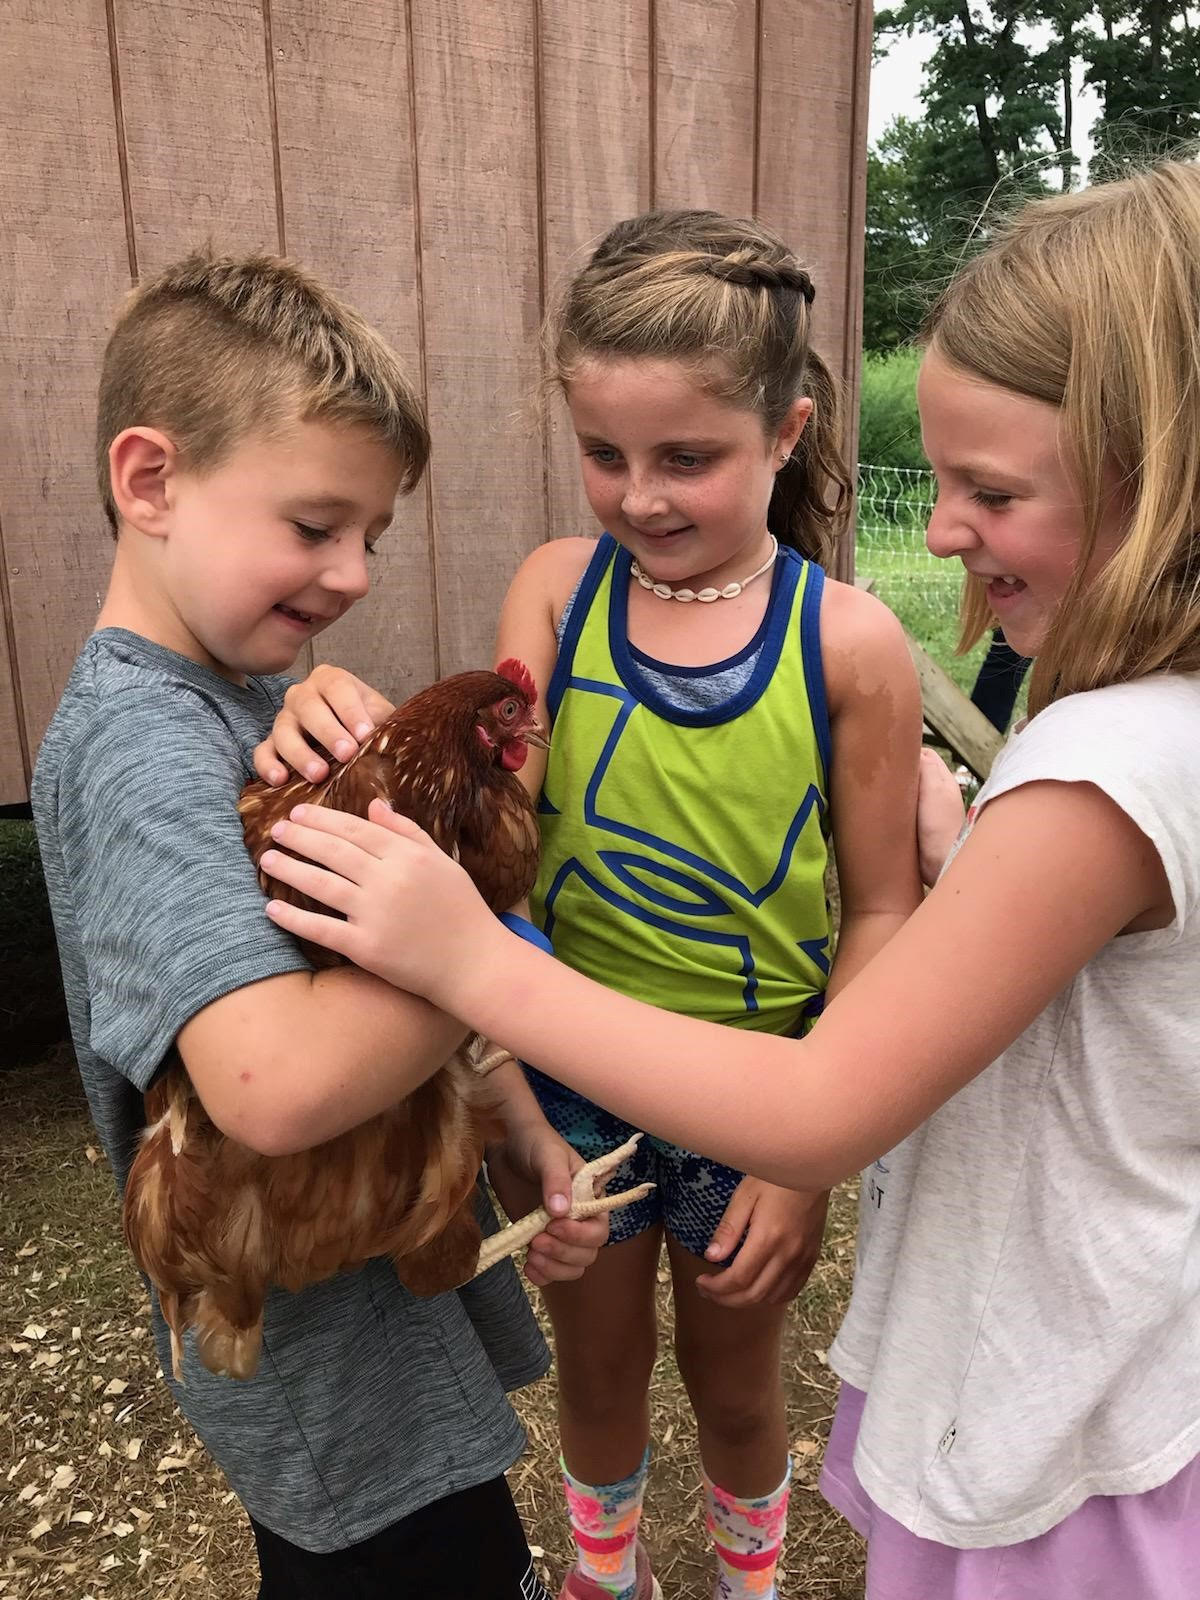 O&R AWARDS $20,000 TO ROCKLAND FARM ALLIANCE EDUCATION PROGRAM